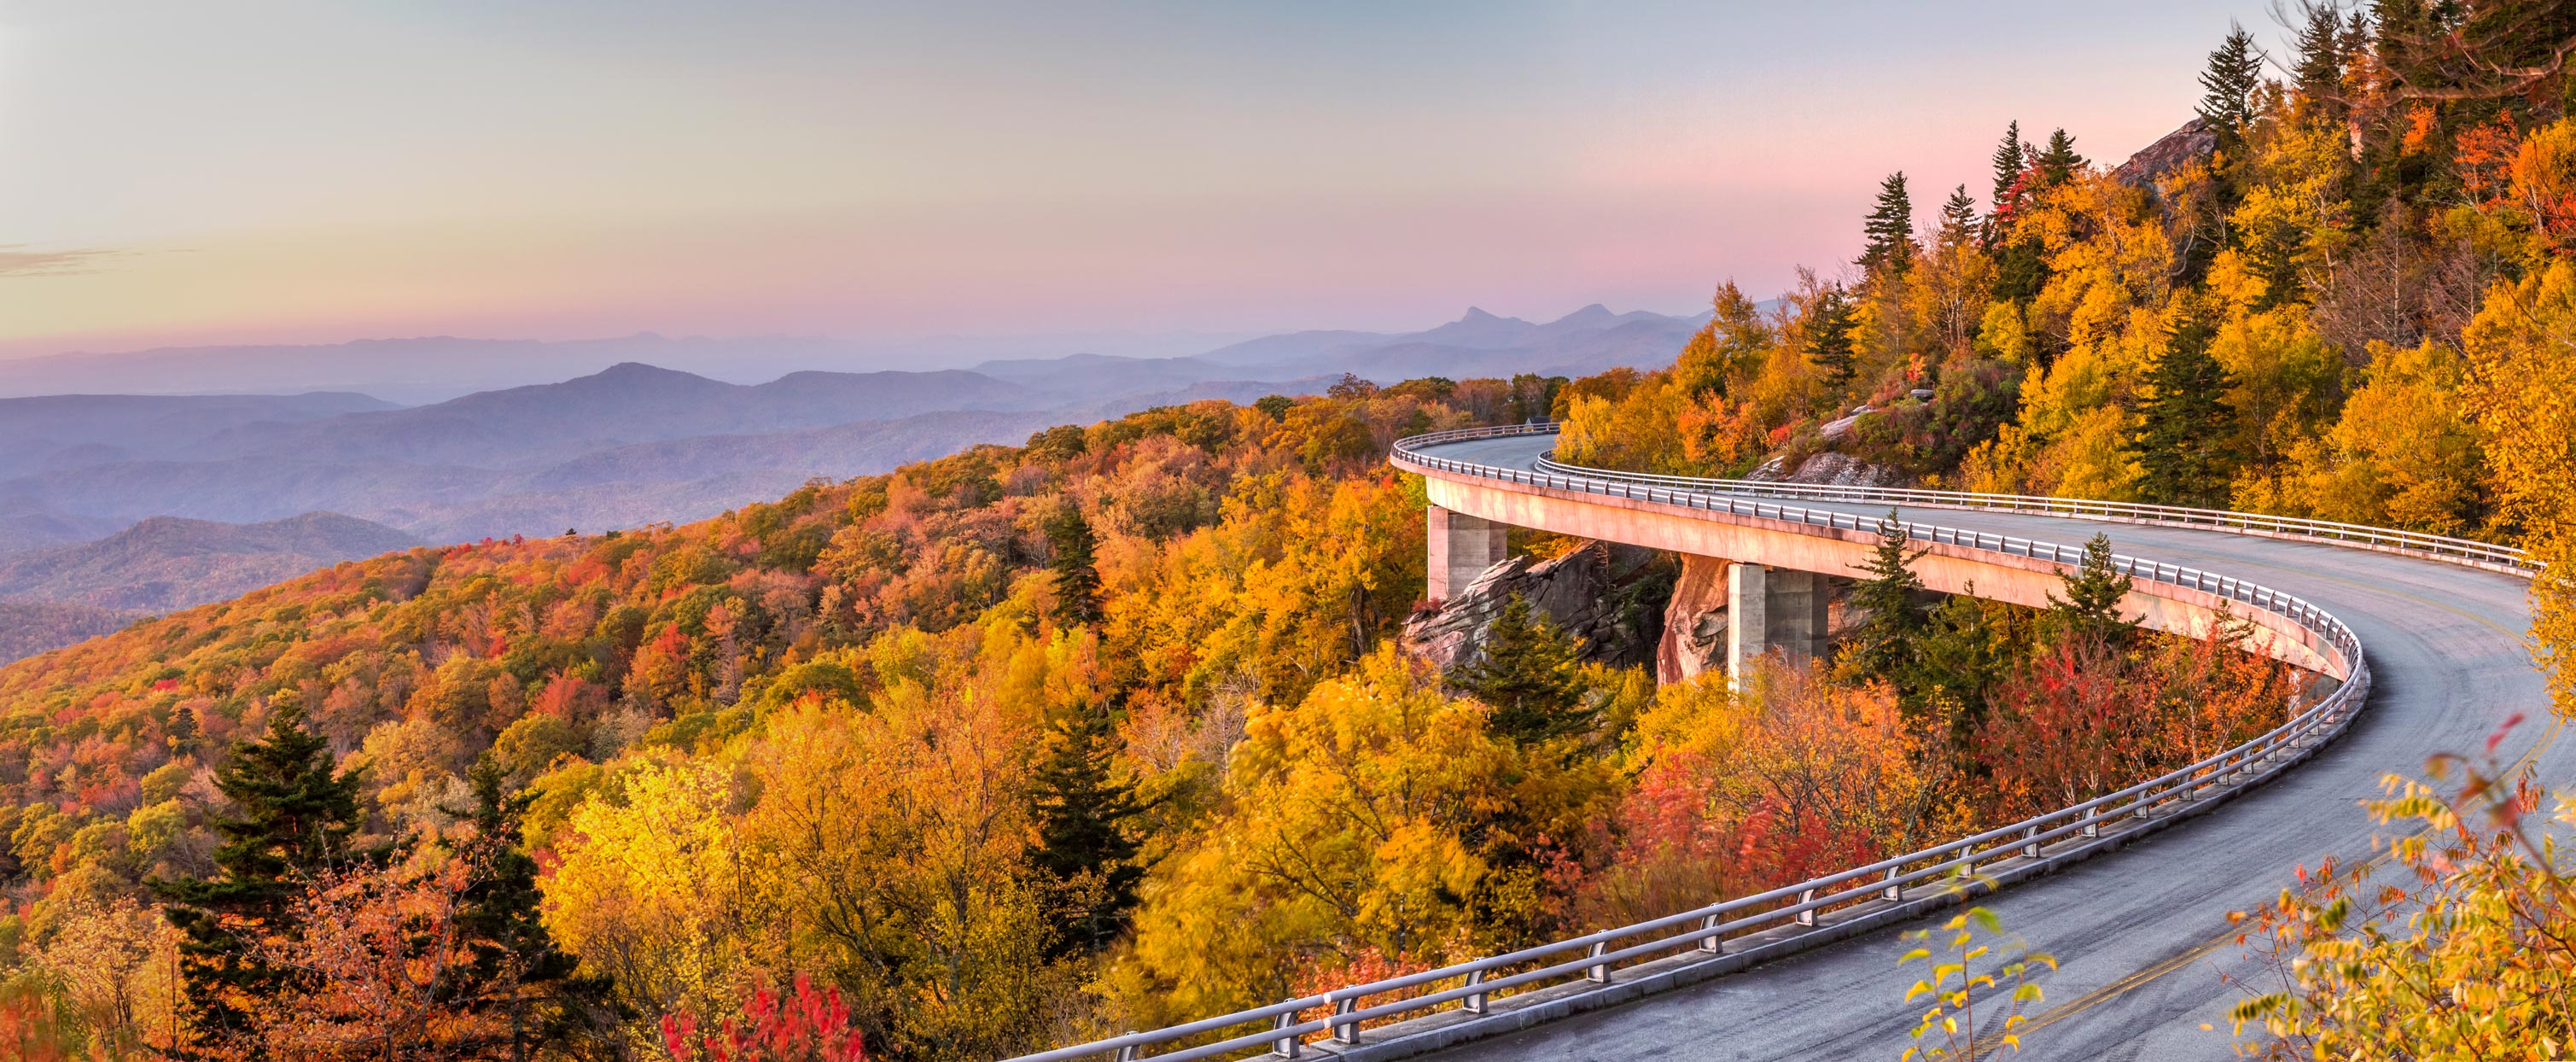 Blue Ridge Parkway, Virginia and North Carolina